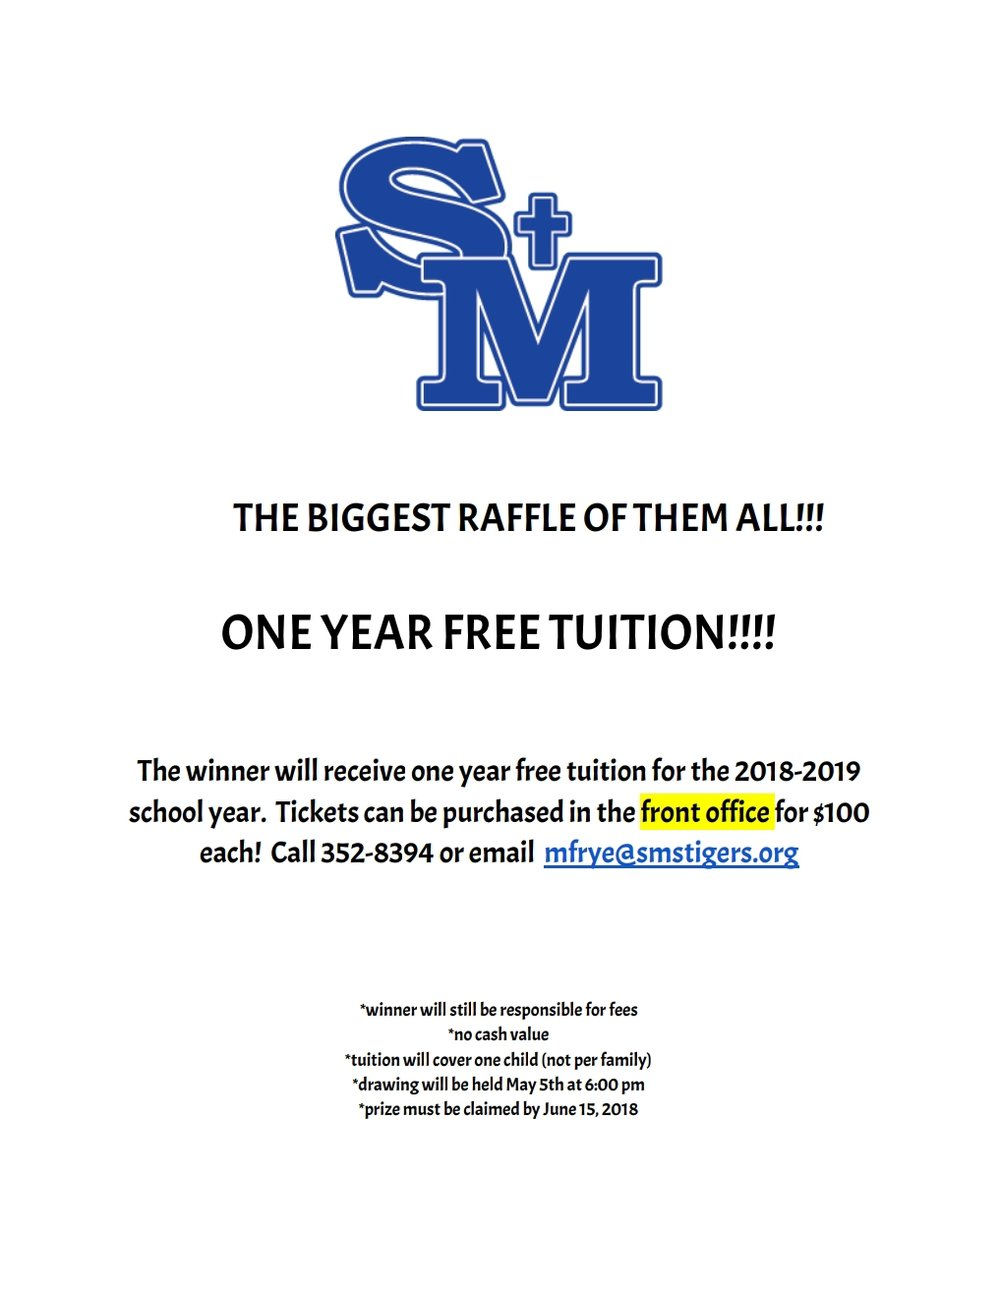 Tickets are going fast! Don't miss out on your chance for free tuition next school year!!